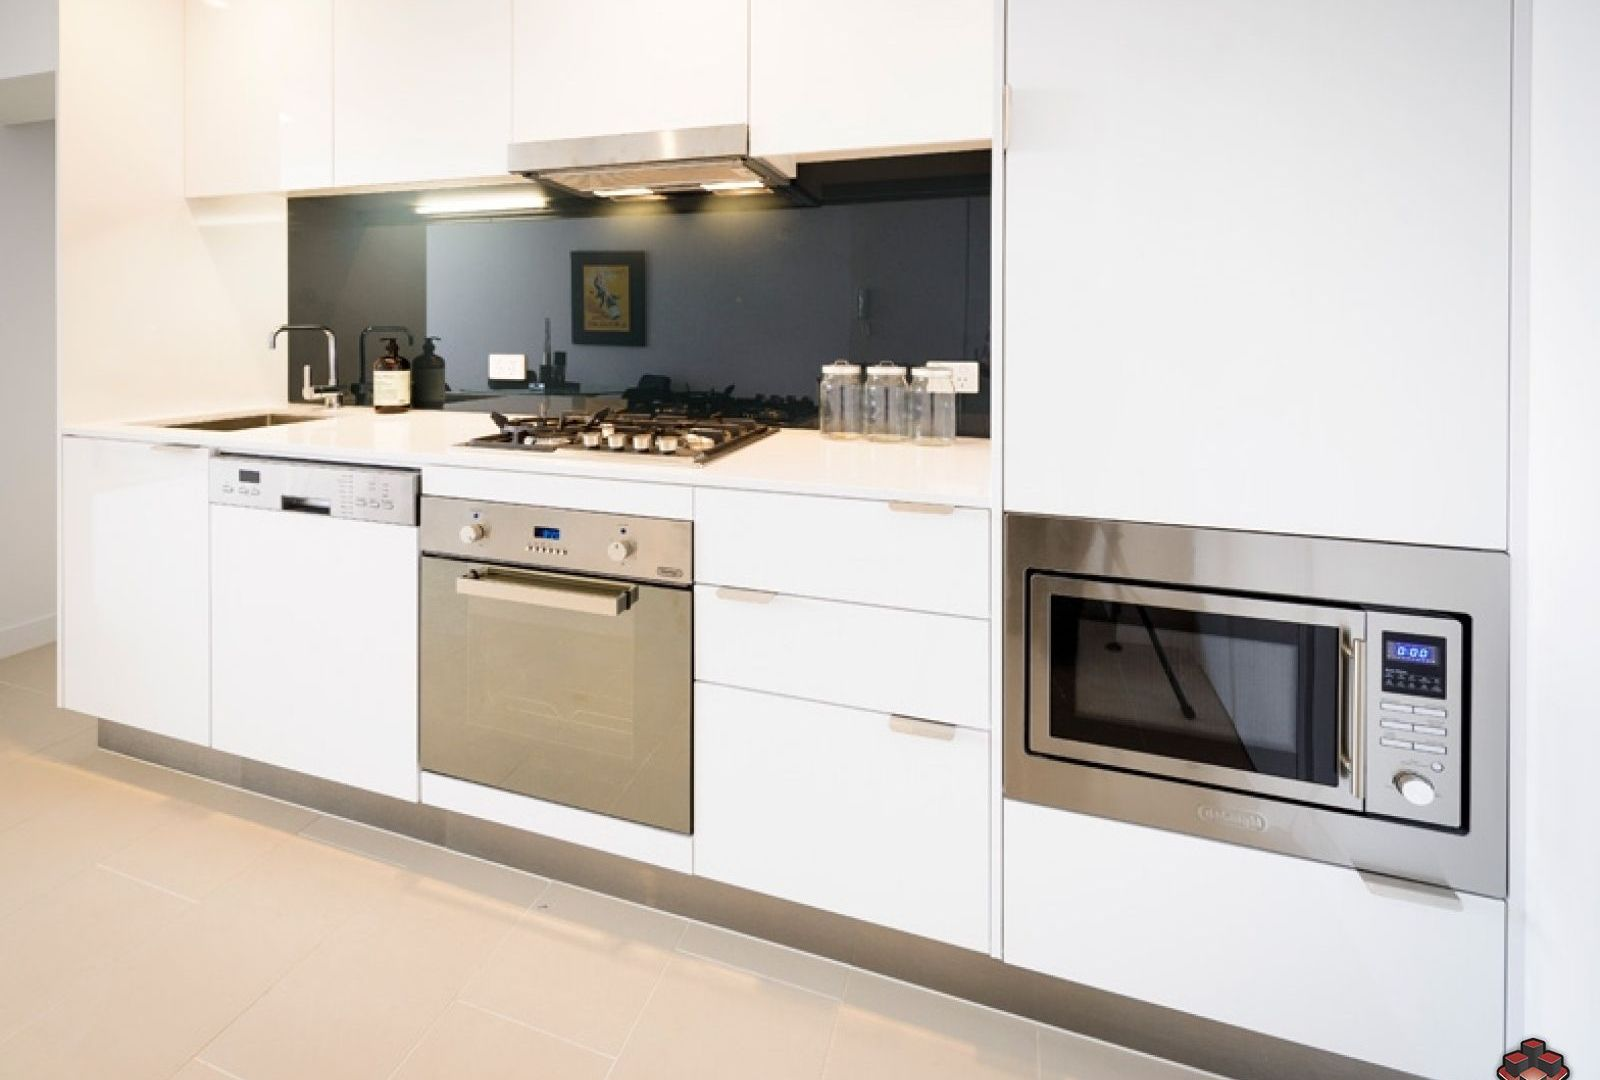 1110/128 Brookes St, Fortitude Valley QLD 4006, Image 2